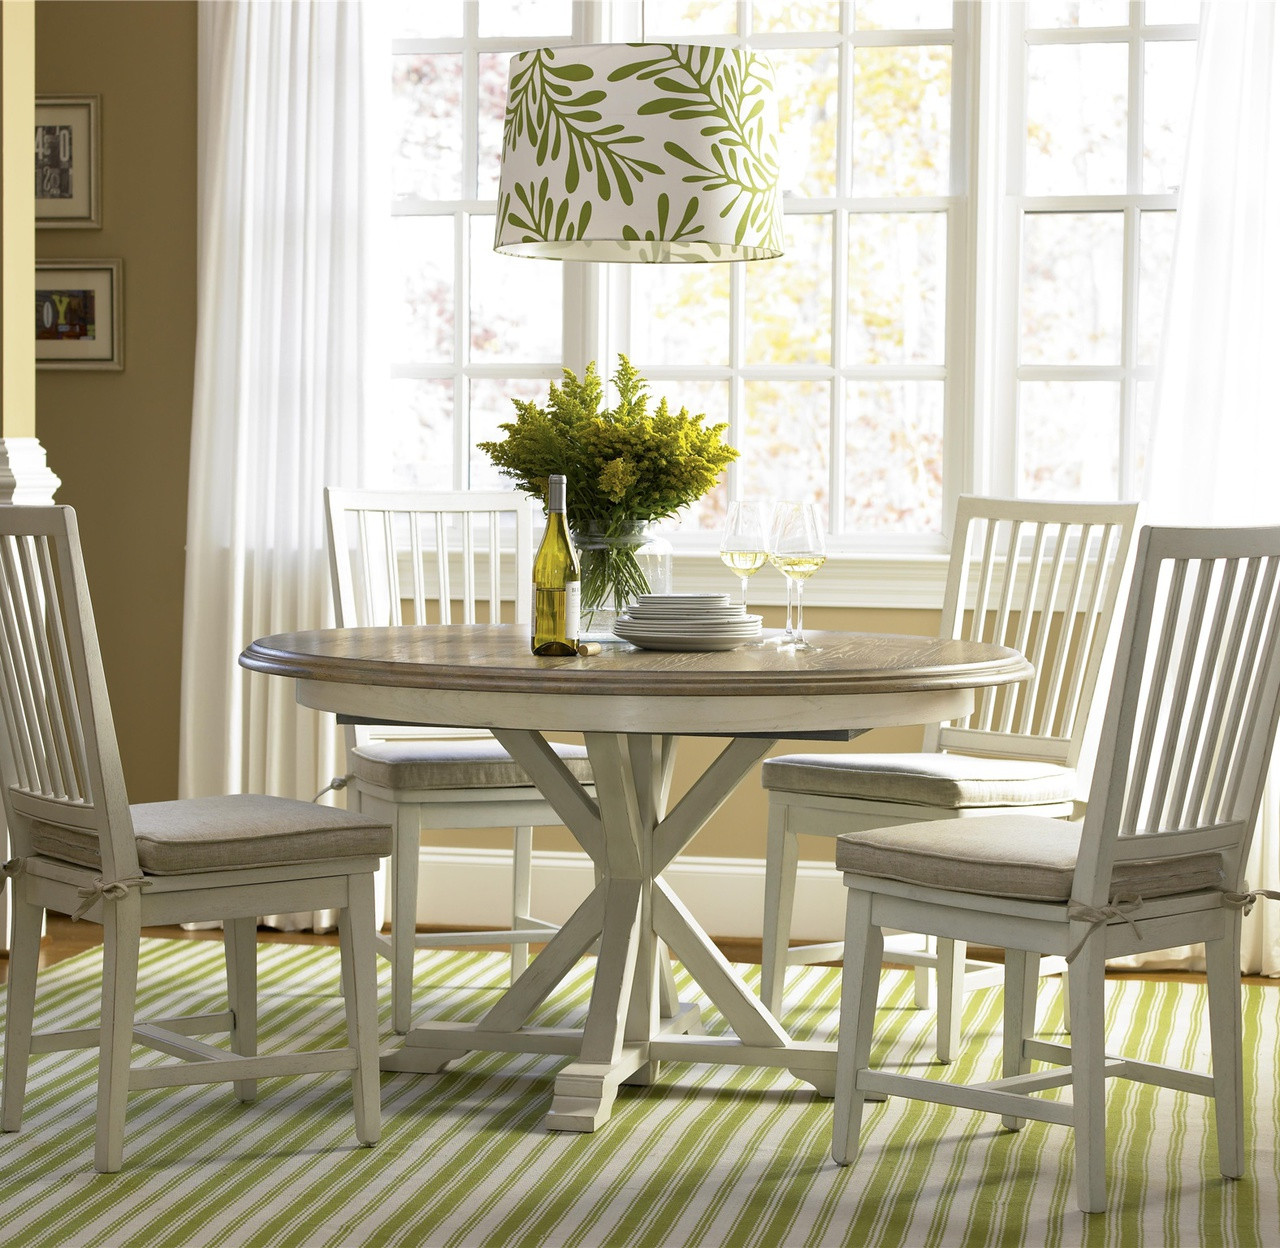 beach cottage kitchen dining tables beachy kitchen table Coastal Beach White Oak Round Expandable Dining Table 54